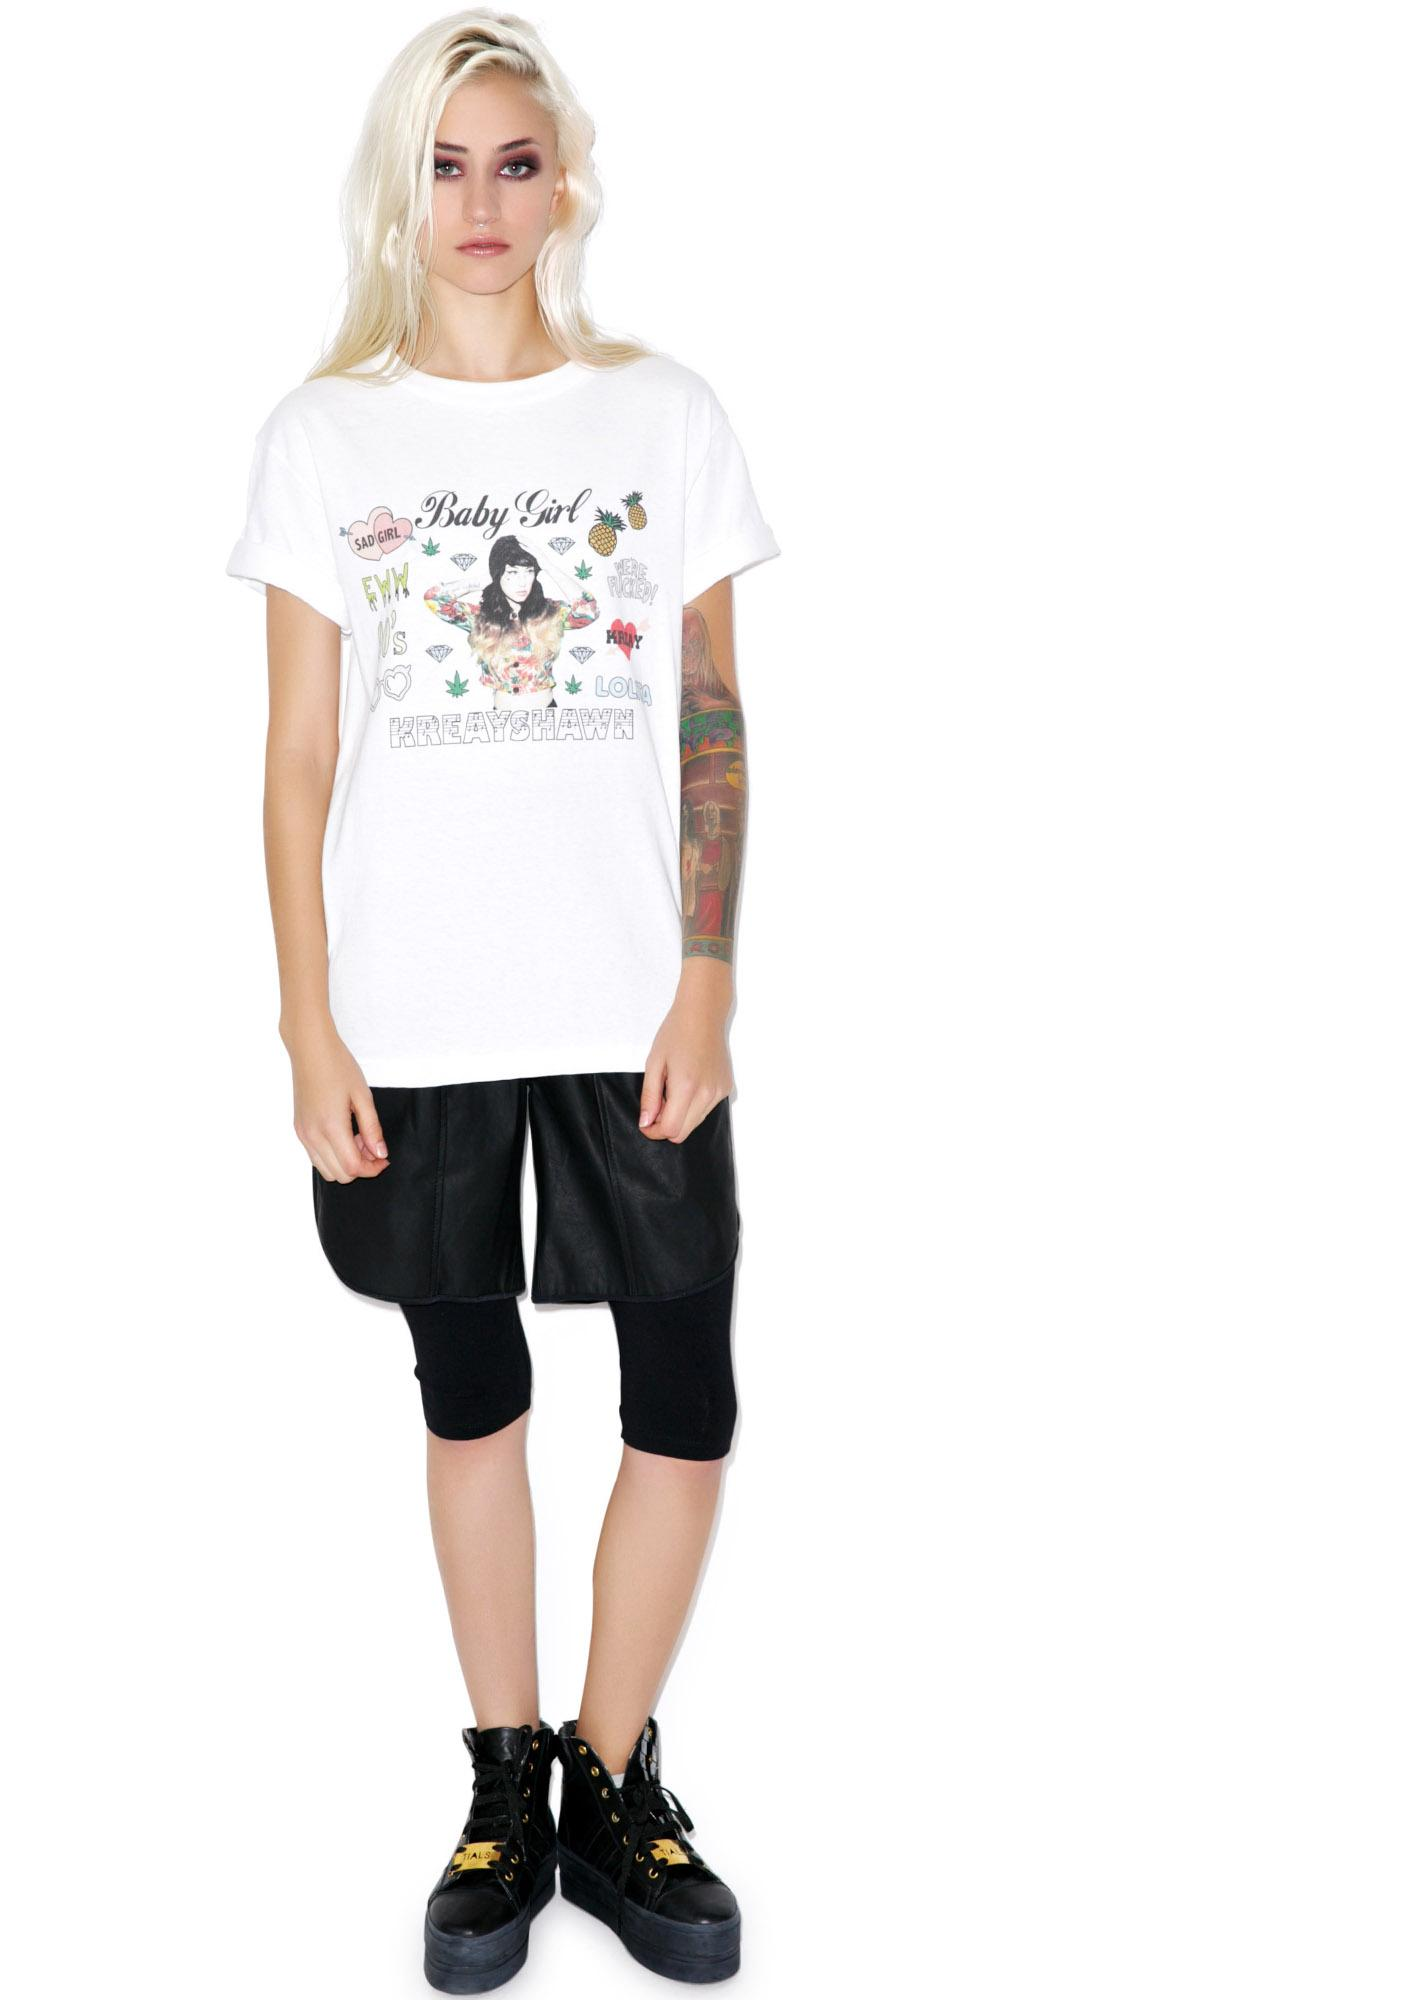 United Couture Kreayshawn X United Couture Tee